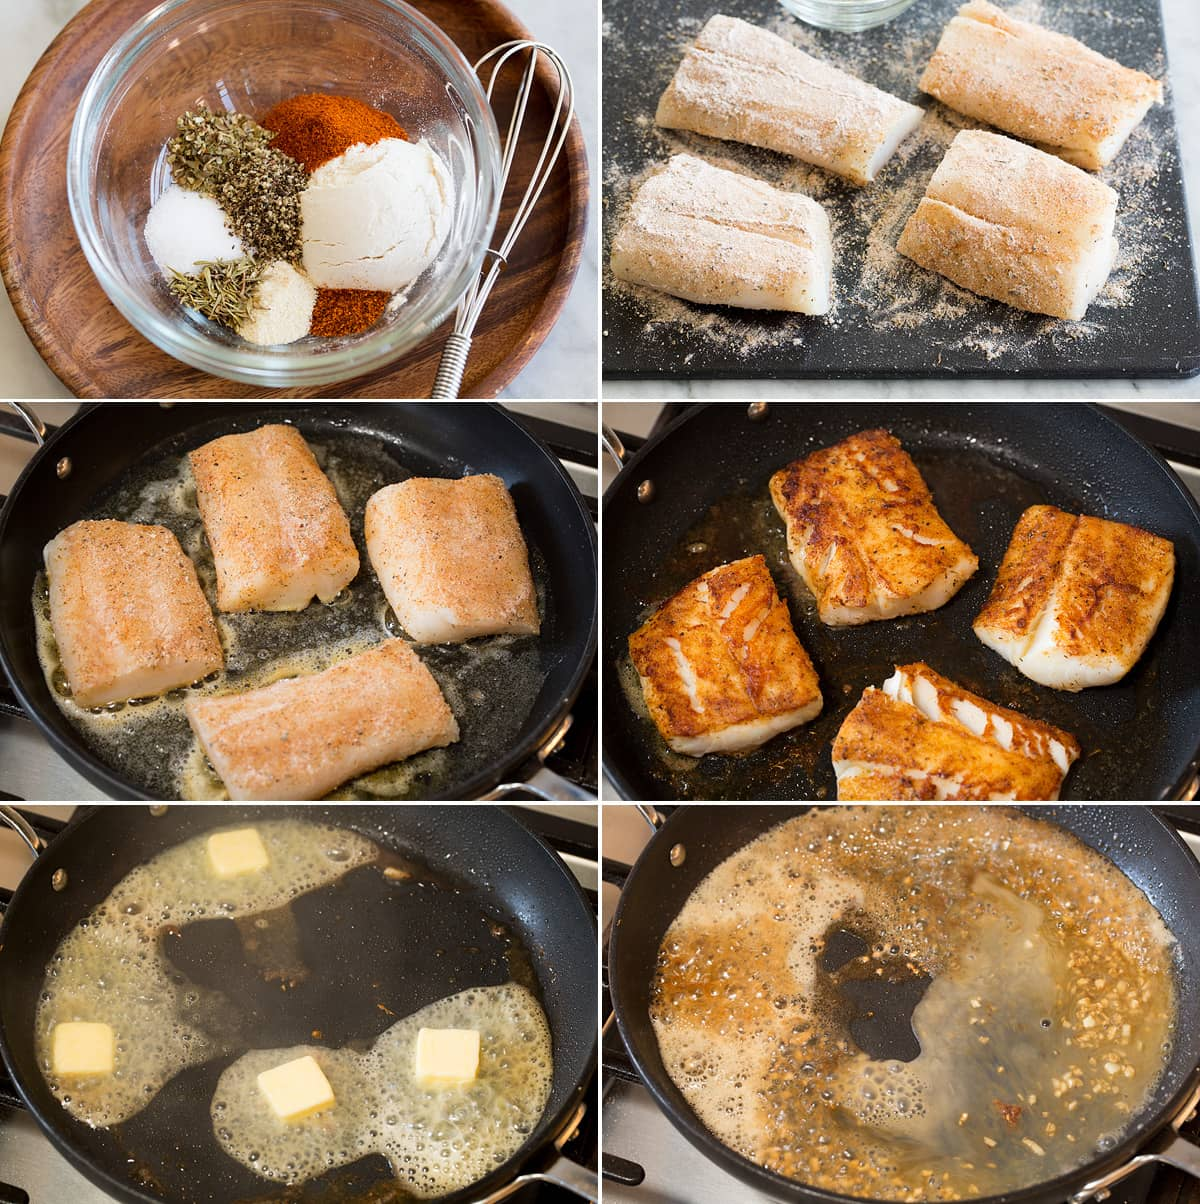 Collage of six photos showing how to make a cod recipe. Shows seasoning cod, searing in a skillet, and cooking a sauce in skillet after.